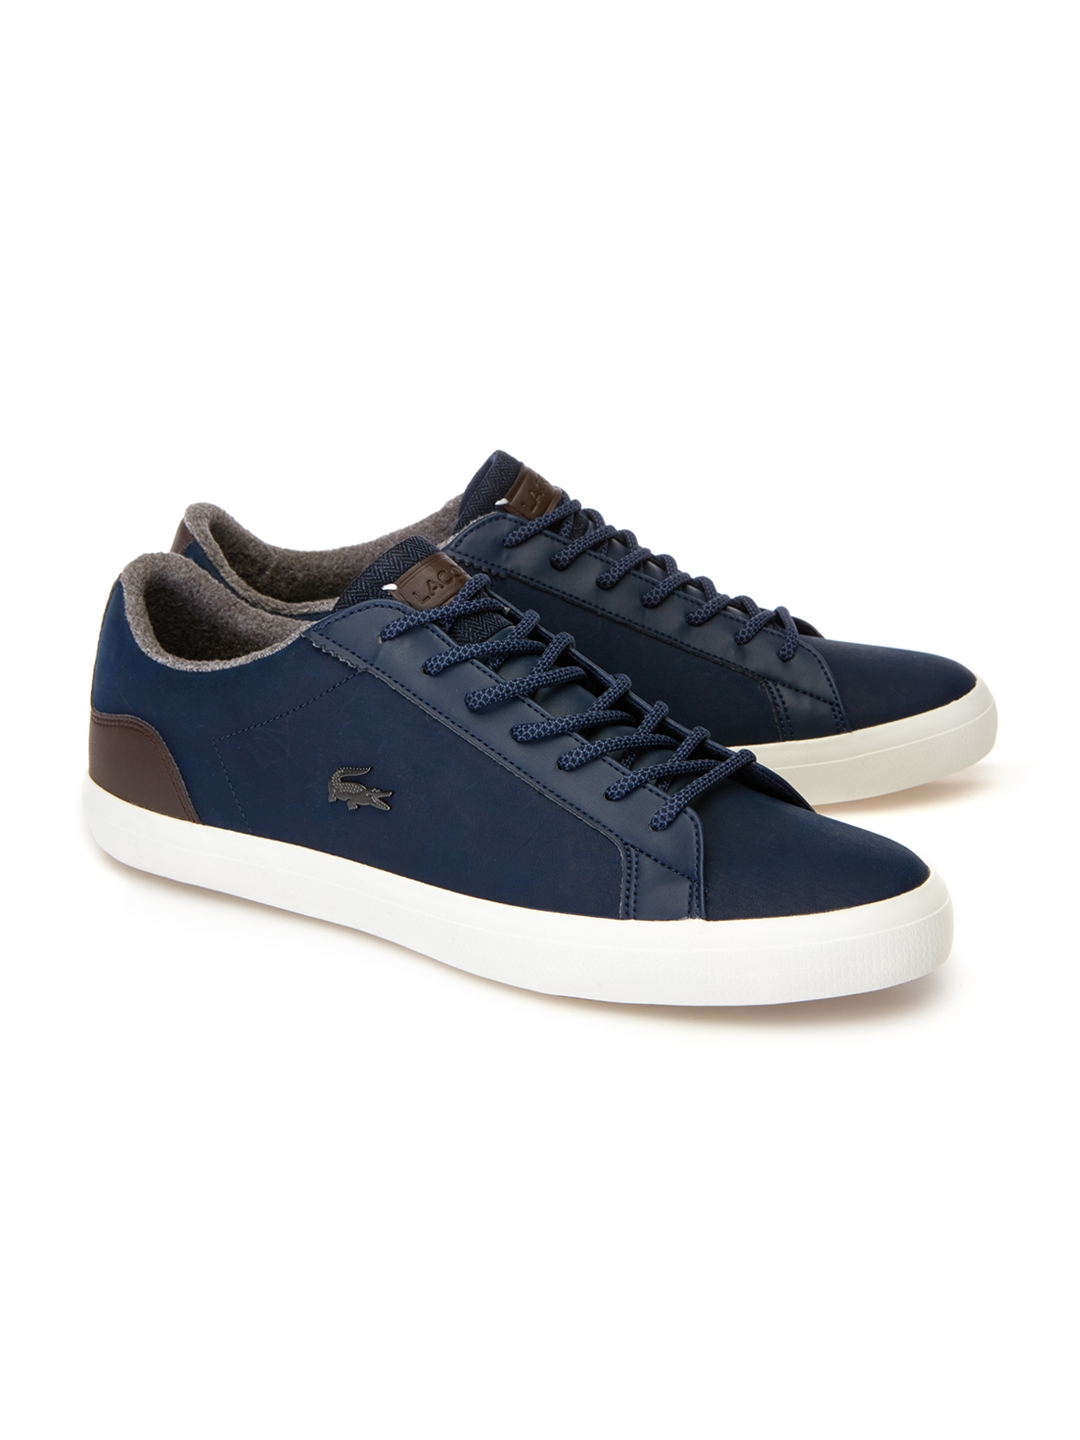 fe724d9f2 Buy Lacoste Men Blue Leather Sneakers - Casual Shoes for Men 7342601 ...